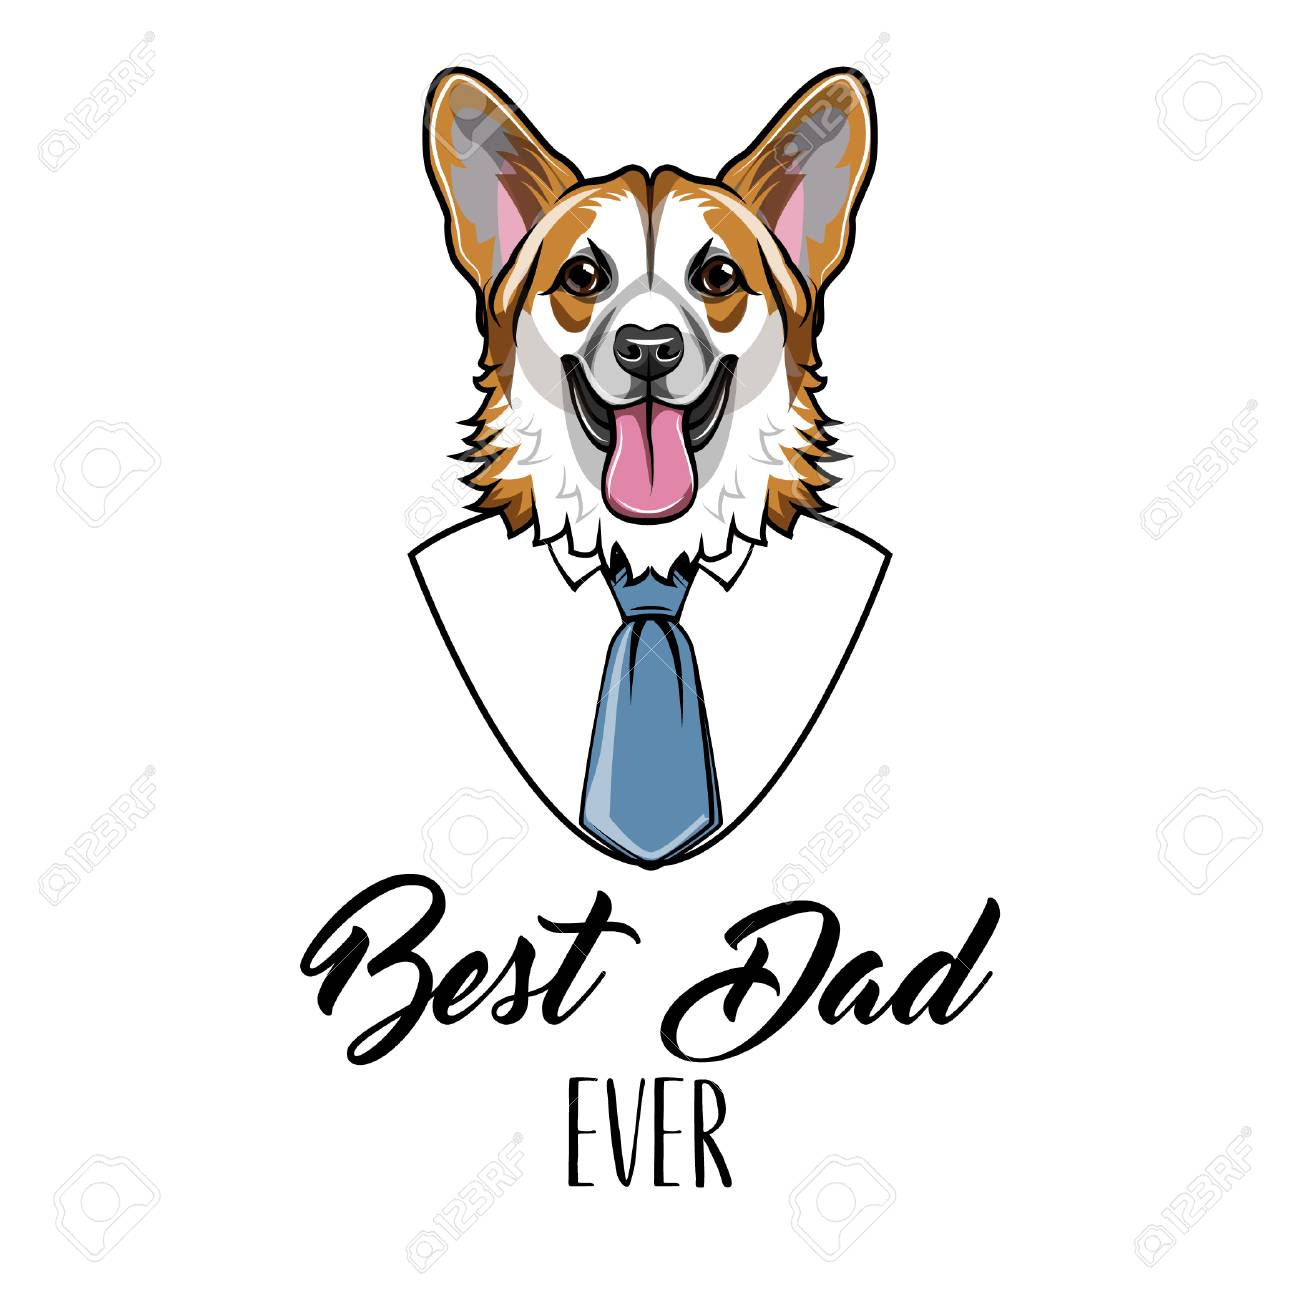 Welsh Corgi Fathers Day Holiday Greeting Card Design White